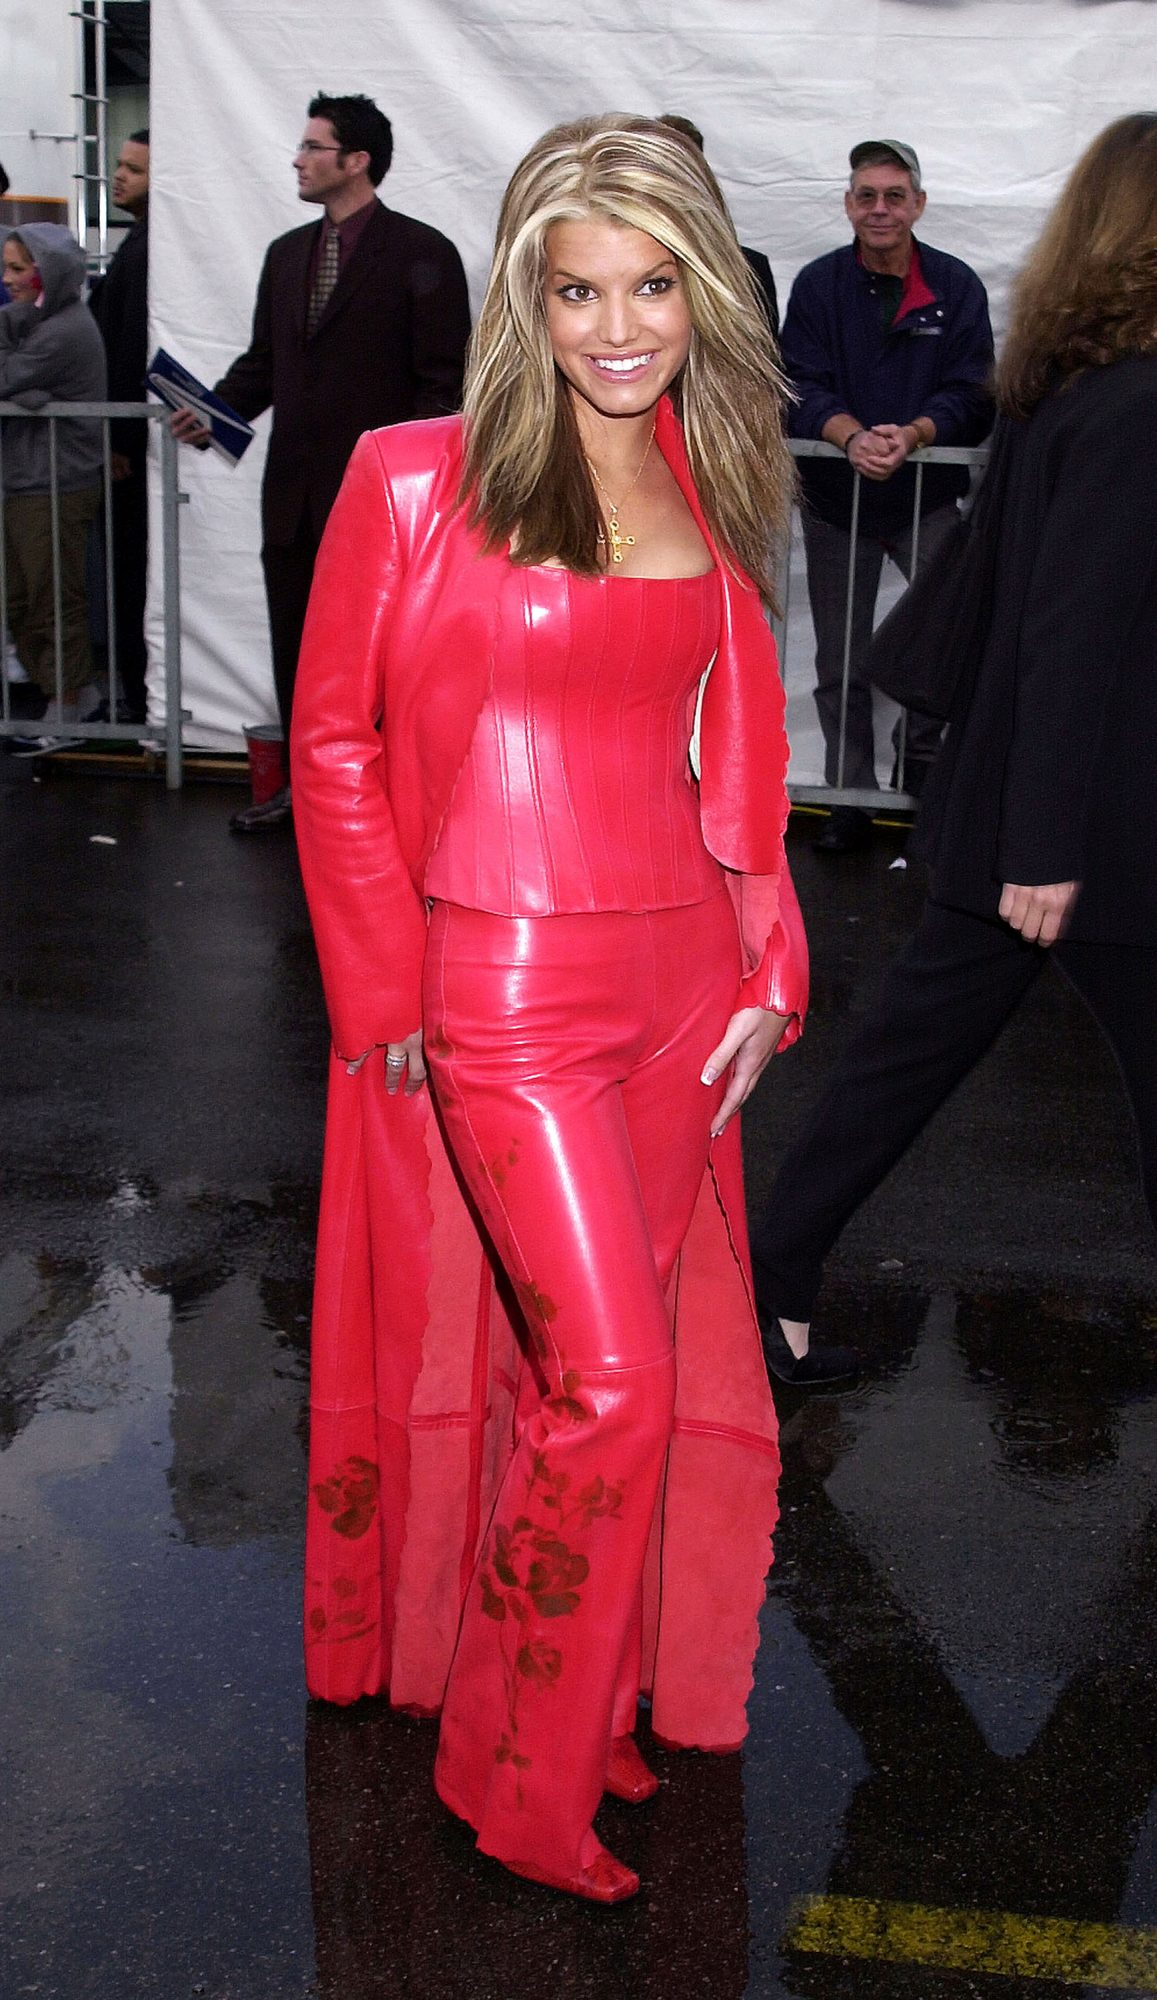 <p>Jessica Simpson at the American Music Awards in 2001</p>